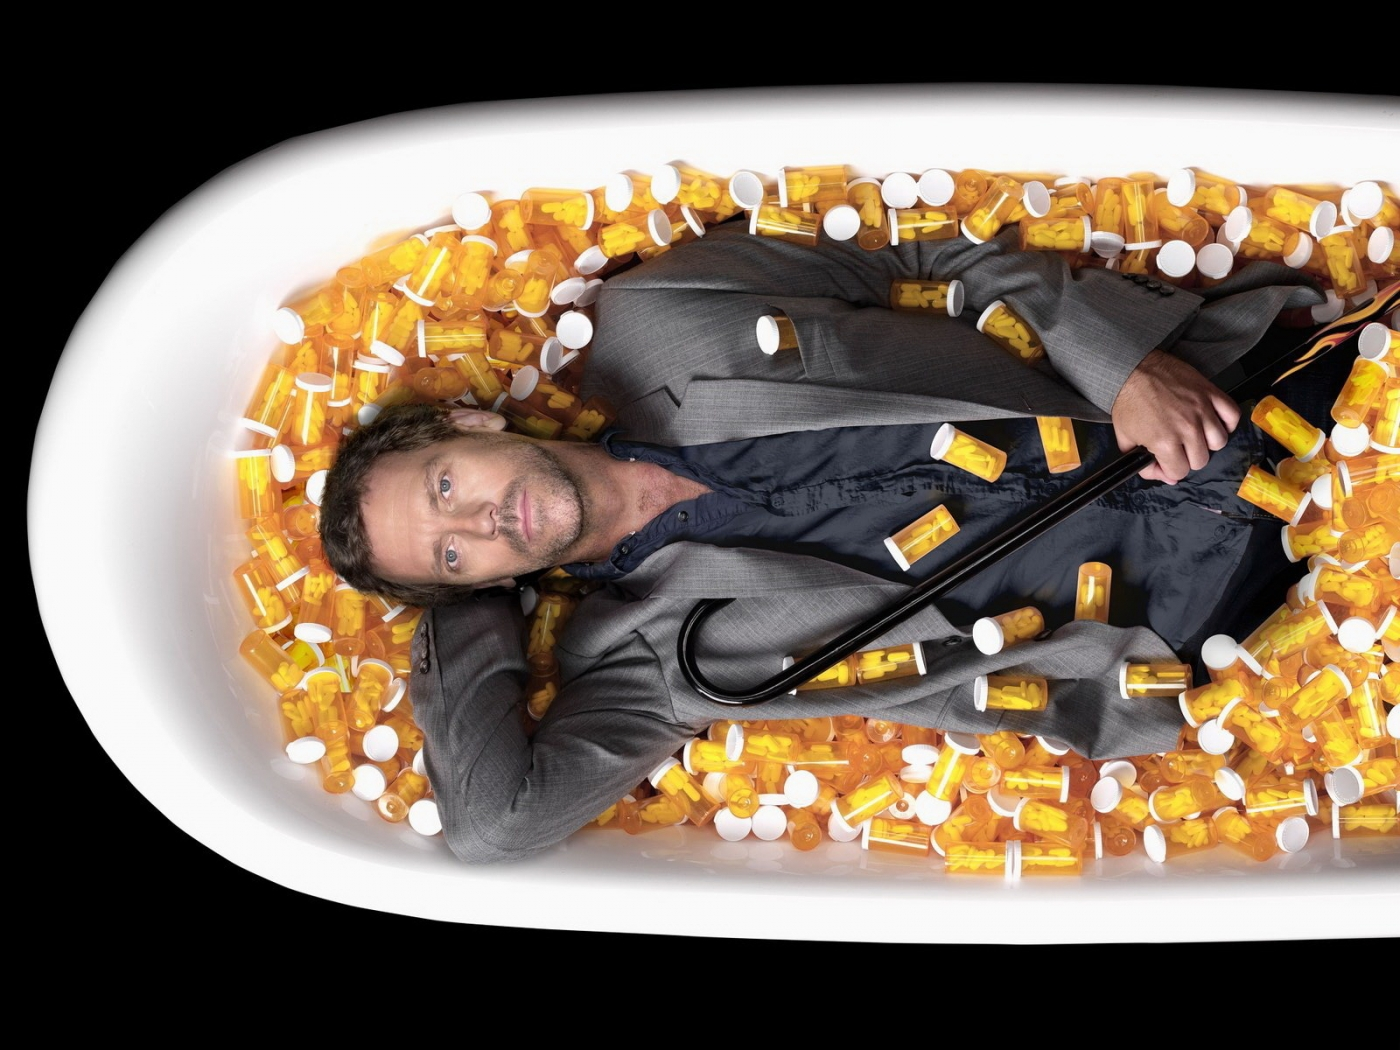 34280 download wallpaper Cinema, Actors, Men, House M.d., Hugh Laurie screensavers and pictures for free